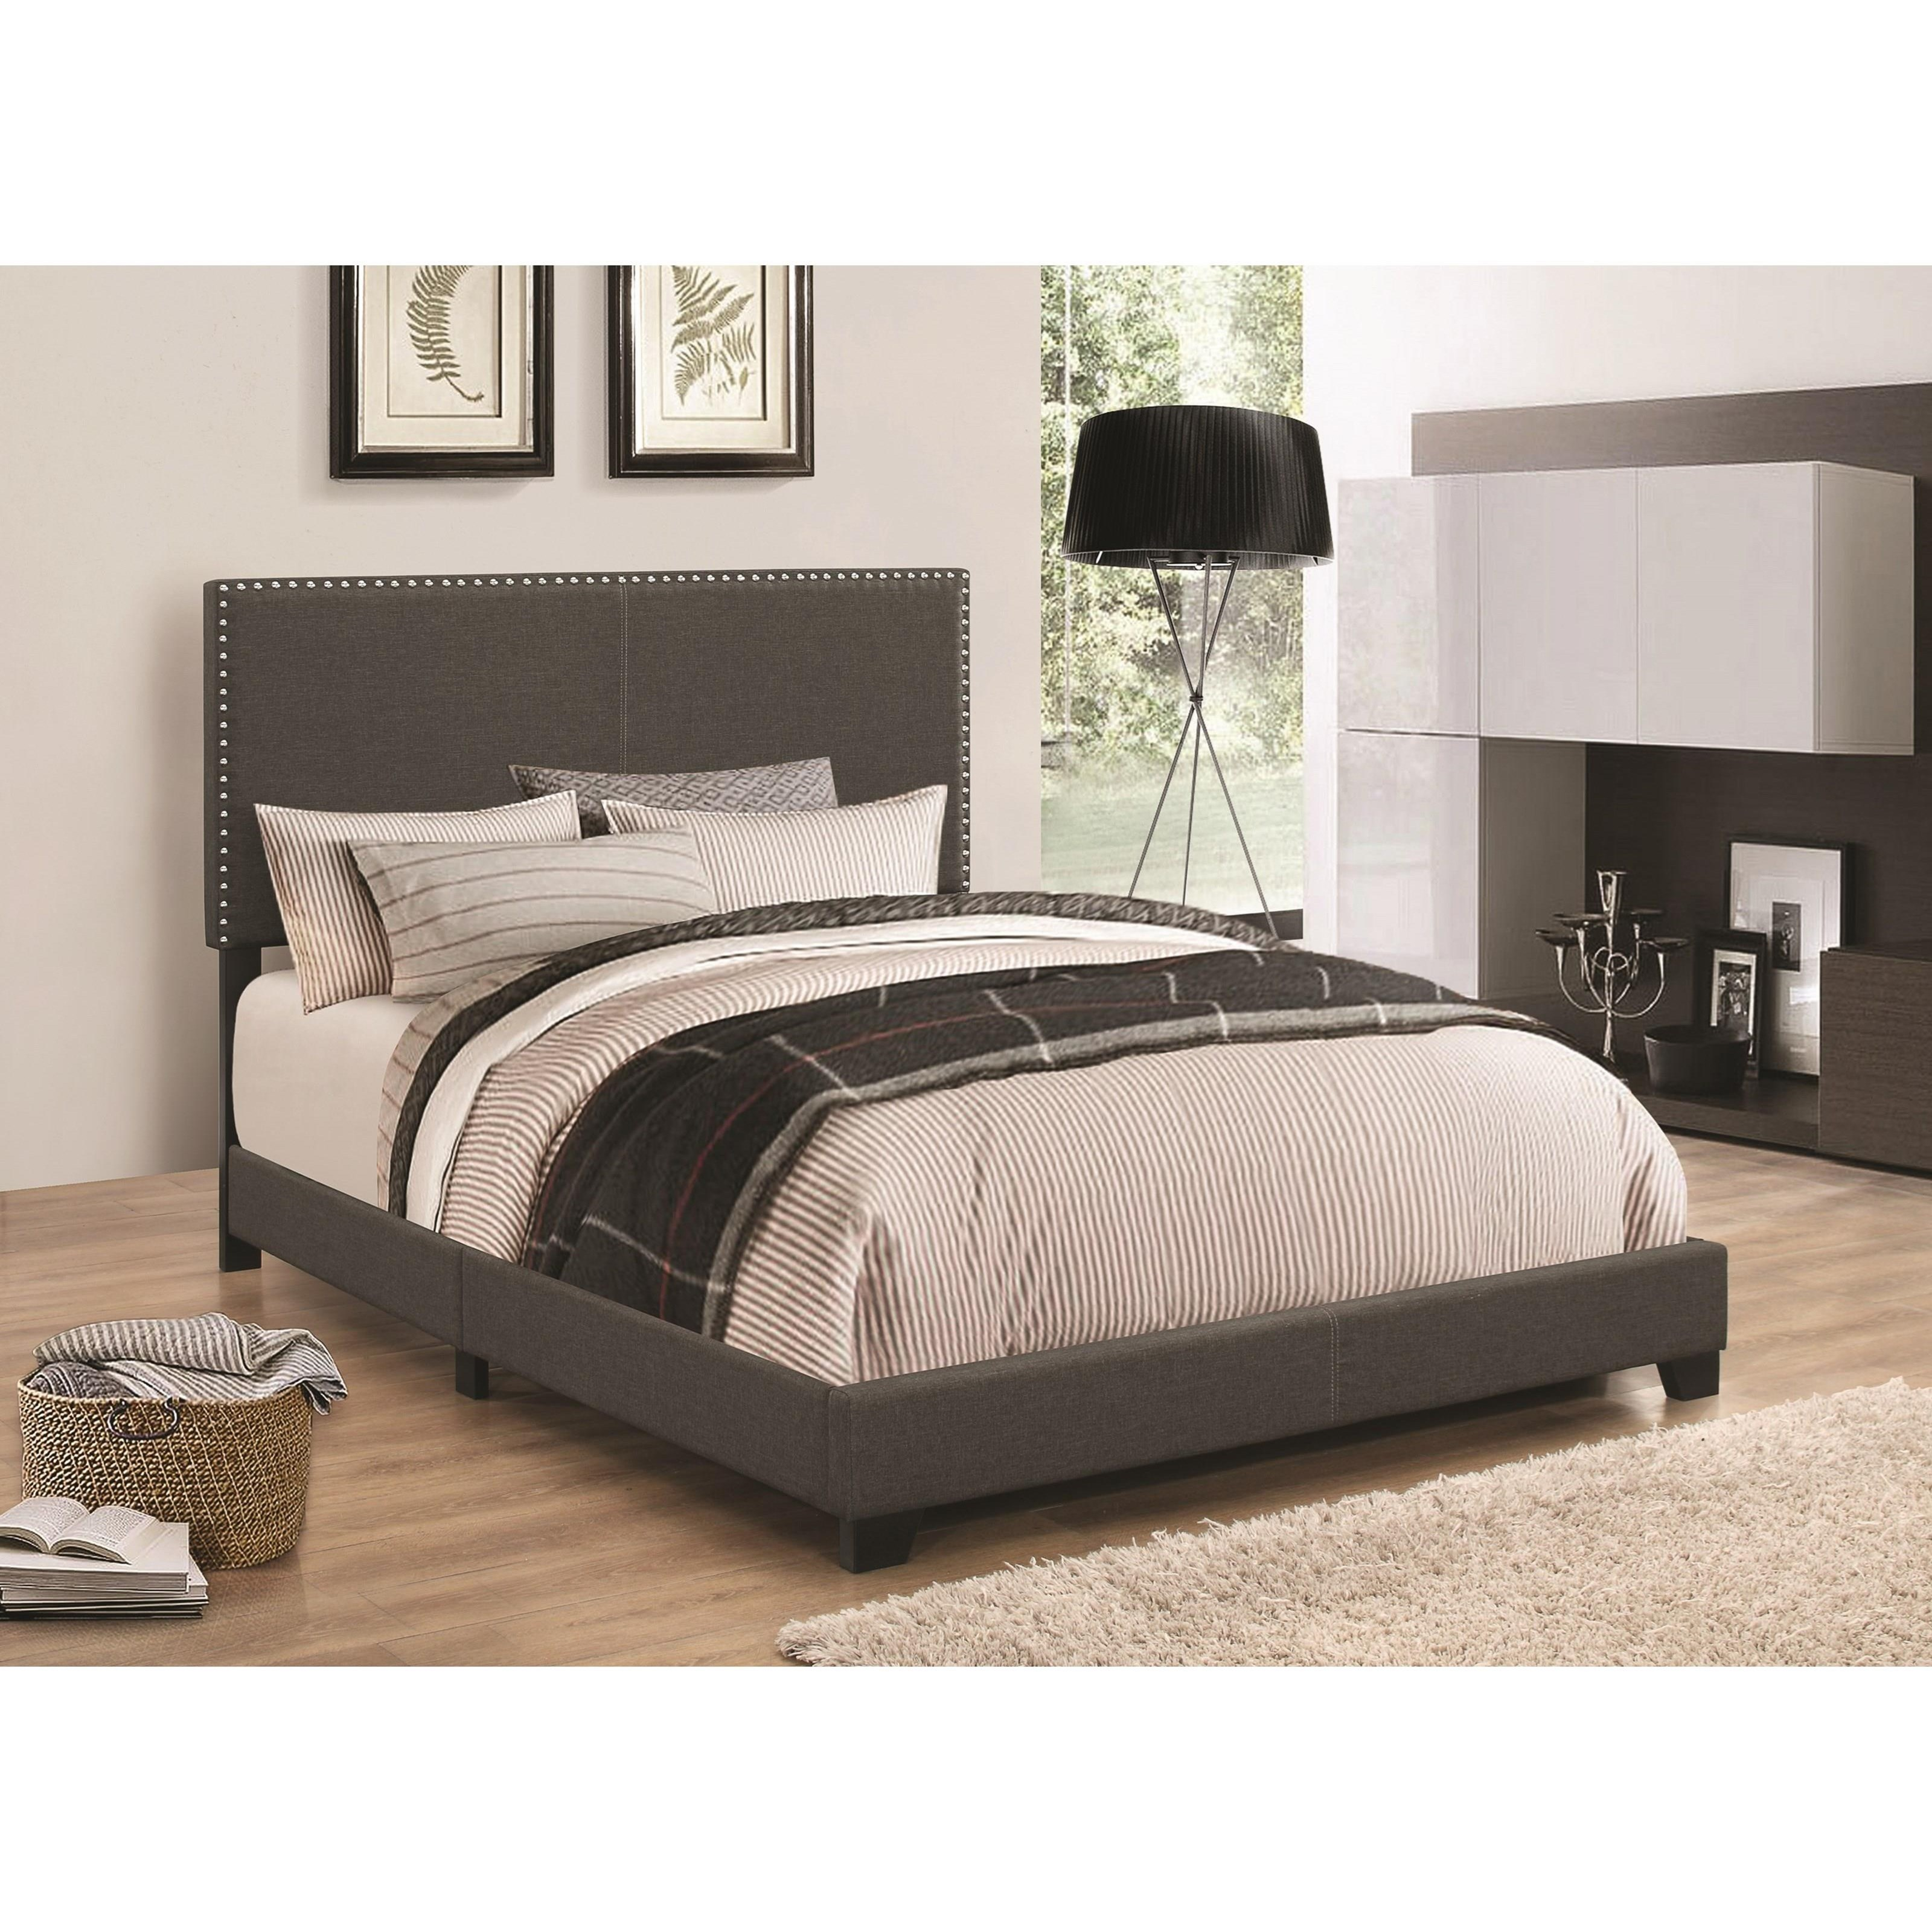 Coaster Upholstered Beds Twin Bed - Item Number: 350061T